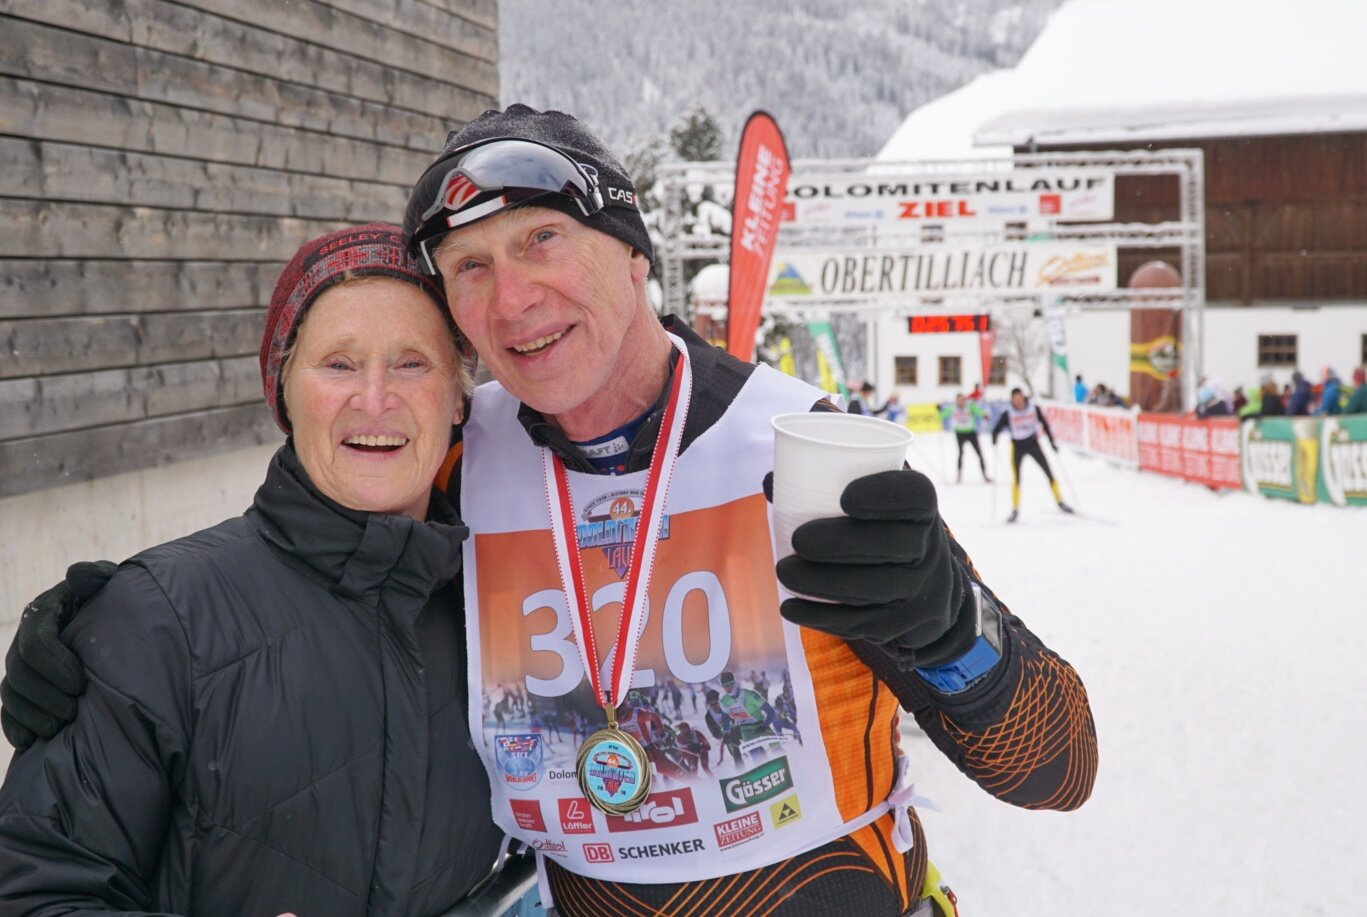 Hayward locals Jane & Mike Mandli, shortly after finishing the Dolomitenlauf in Austria. Jane got a podium in her age group and had time to put on warm clothes before cheering husband Mike across the finish line.